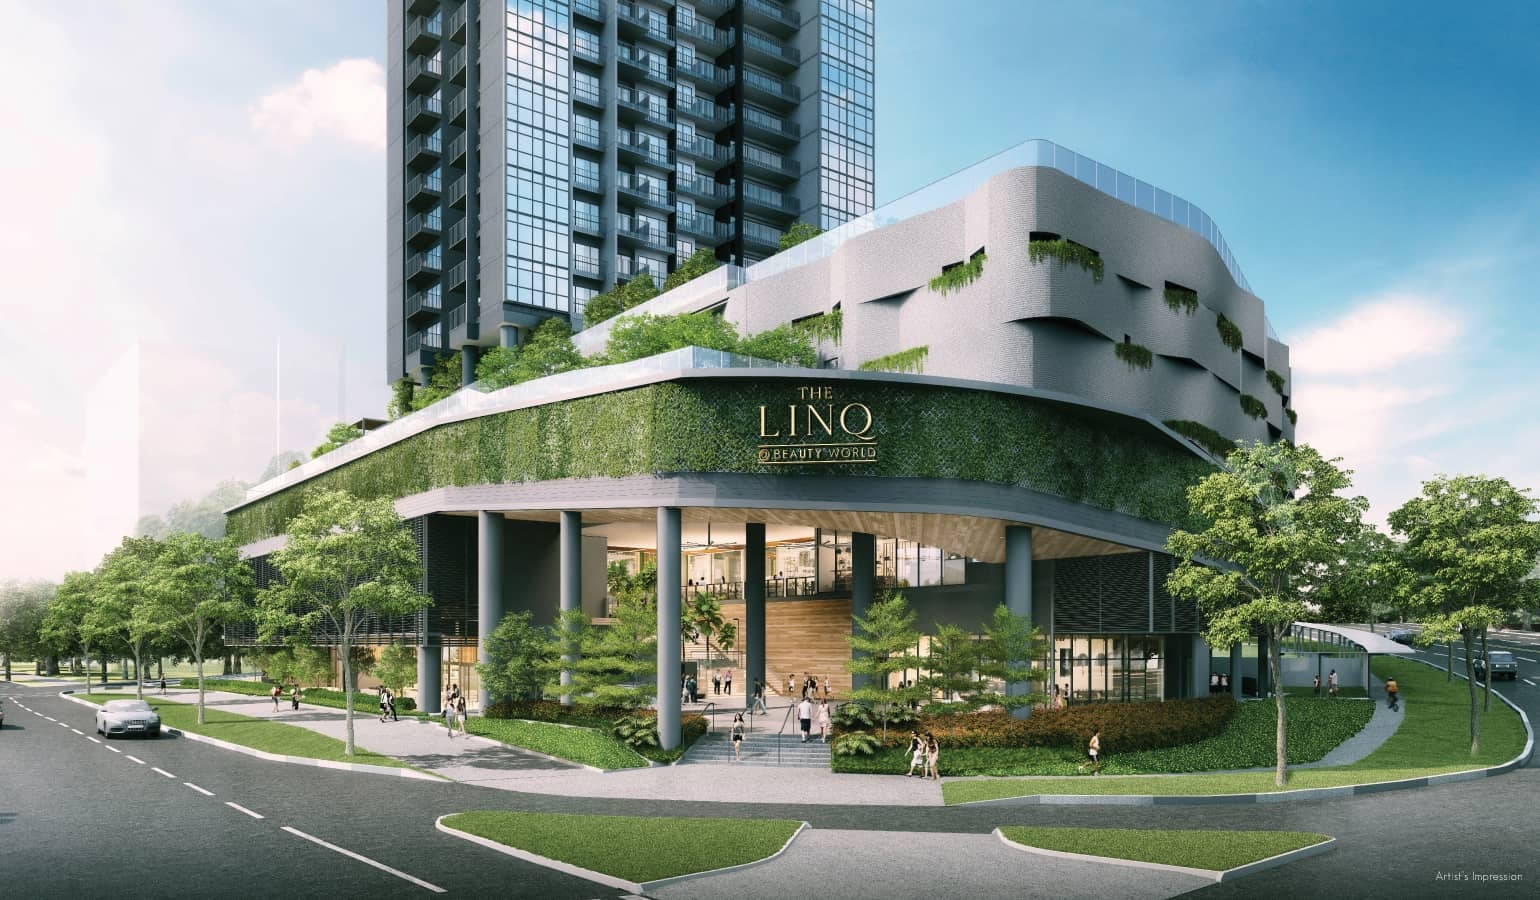 The Linq at Beauty World